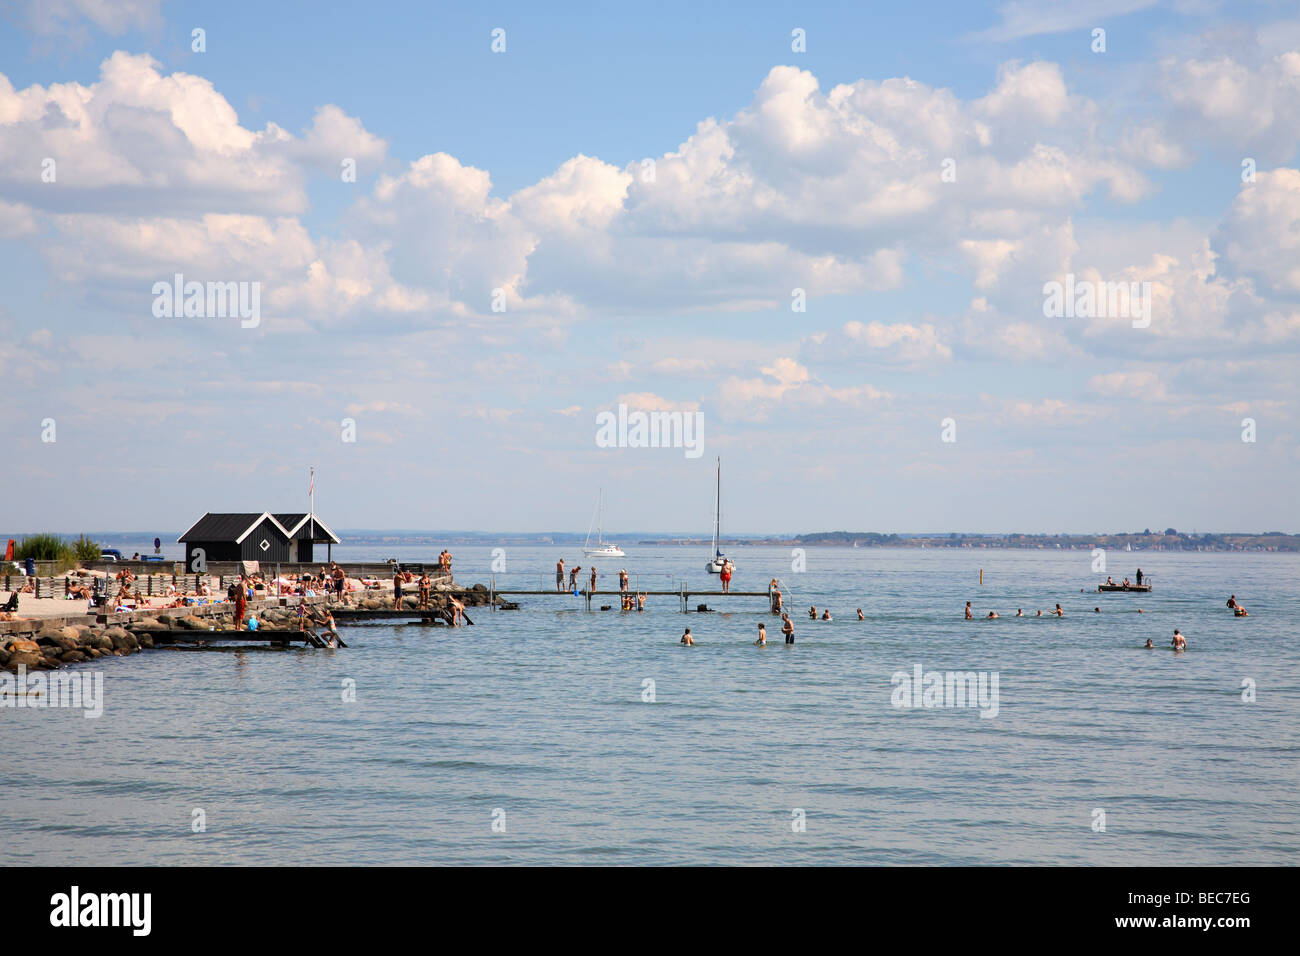 One summer day on the Danish beach at Rungsted Kyst. The Swedish island Ven can be seen across the Sound in the - Stock Image